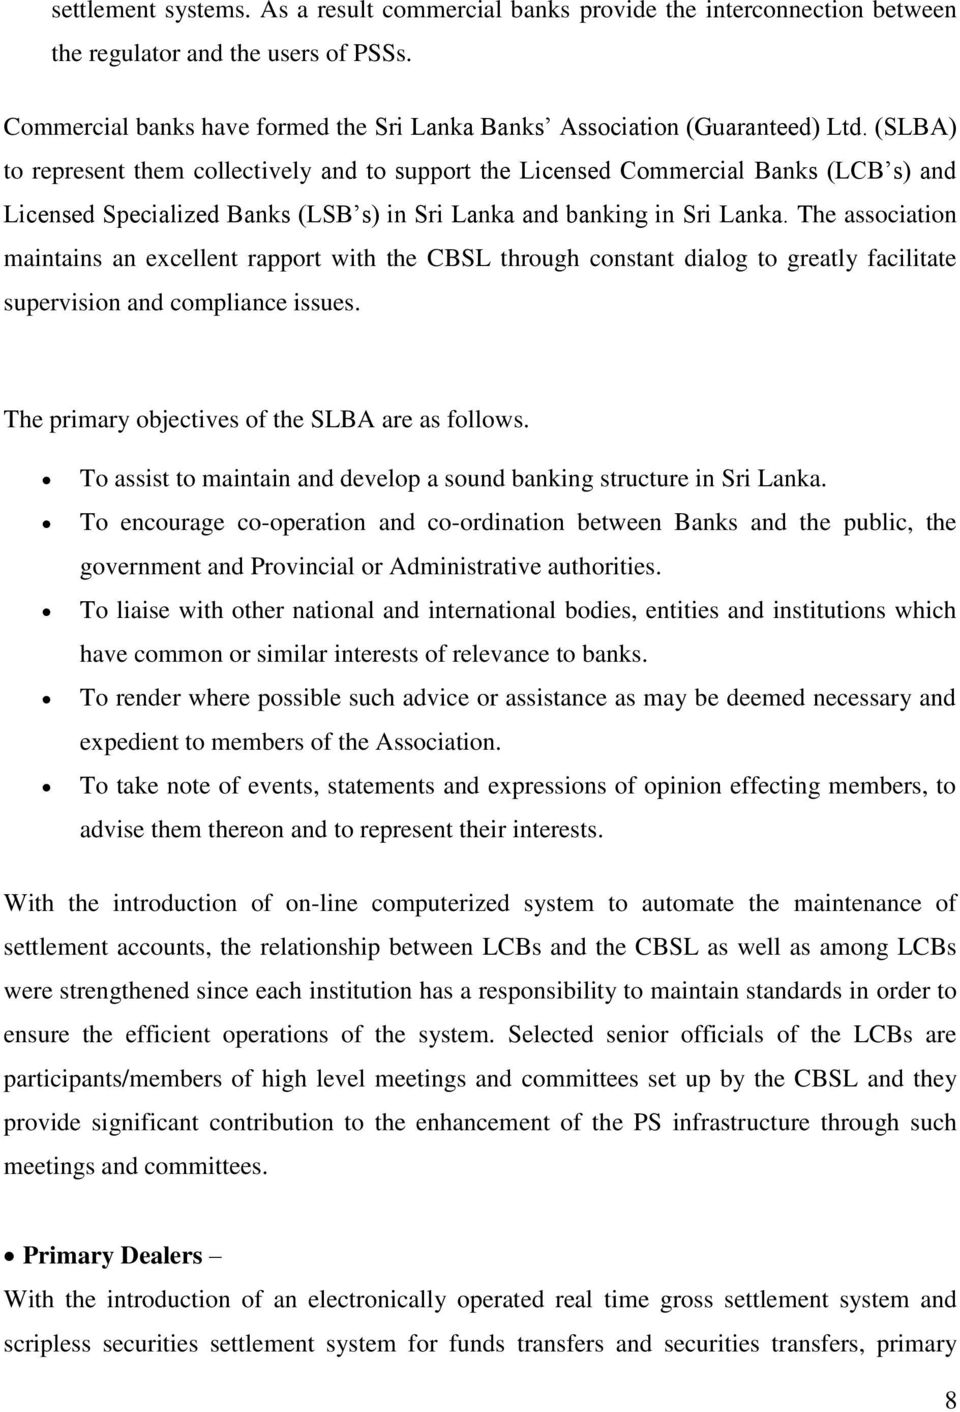 The association maintains an excellent rapport with the CBSL through constant dialog to greatly facilitate supervision and compliance issues. The primary objectives of the SLBA are as follows.